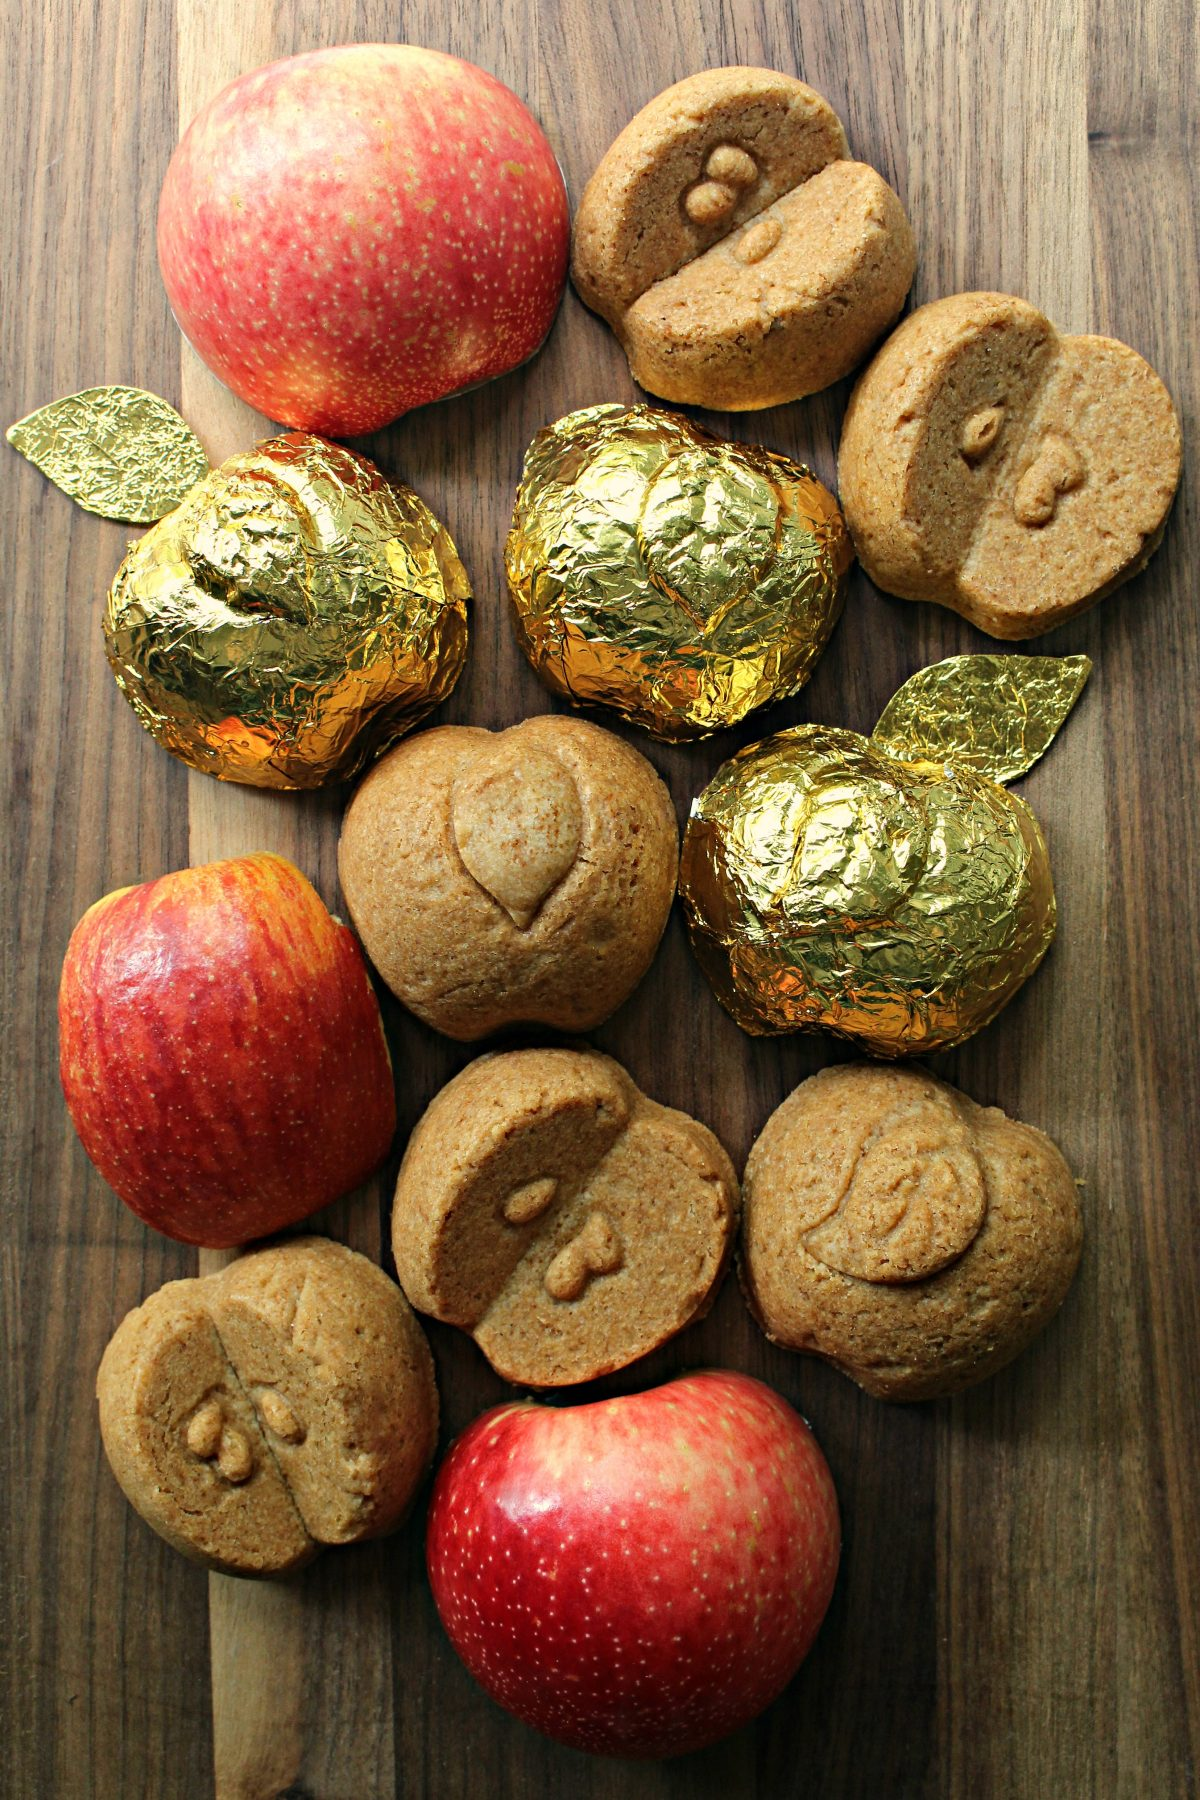 Apple shaped cakelets, three wrapped in gold foil, on wood cutting board with sliced apples.